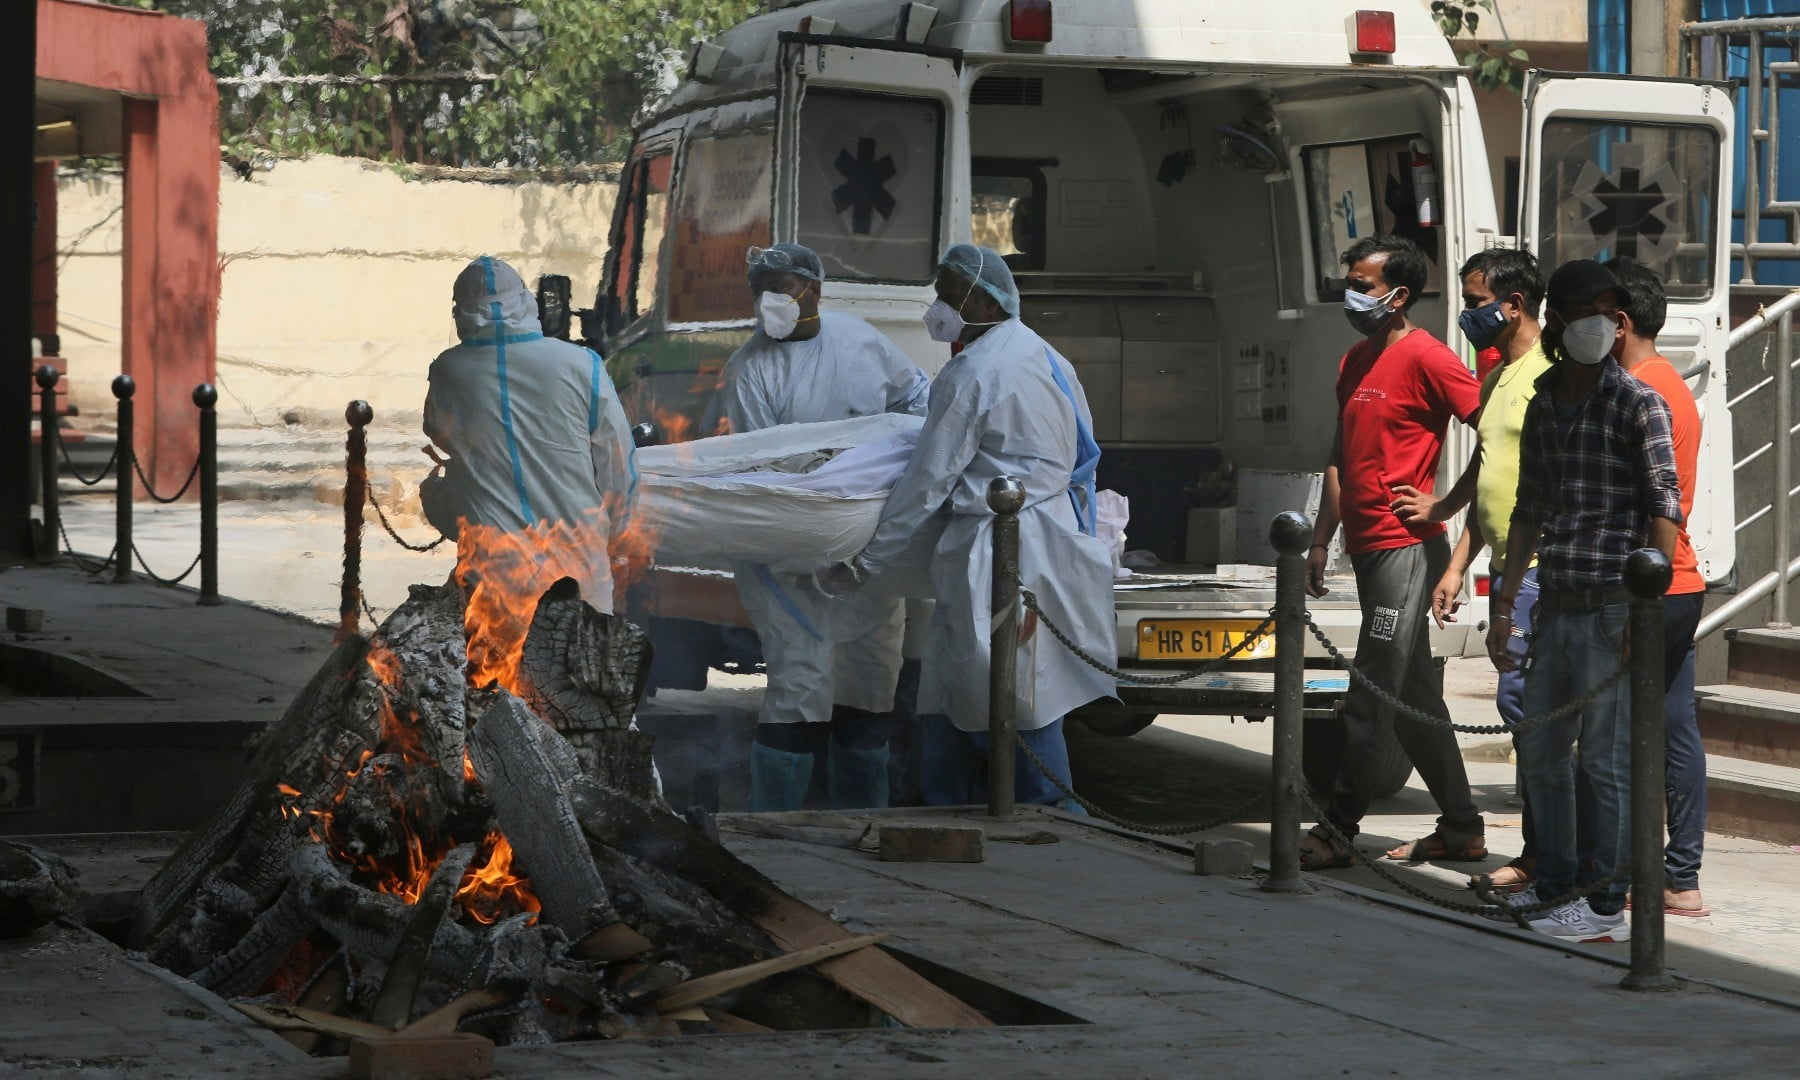 Health workers carry a body of a person who died of Covid-19 for cremation in New Delhi on April 19. — AP